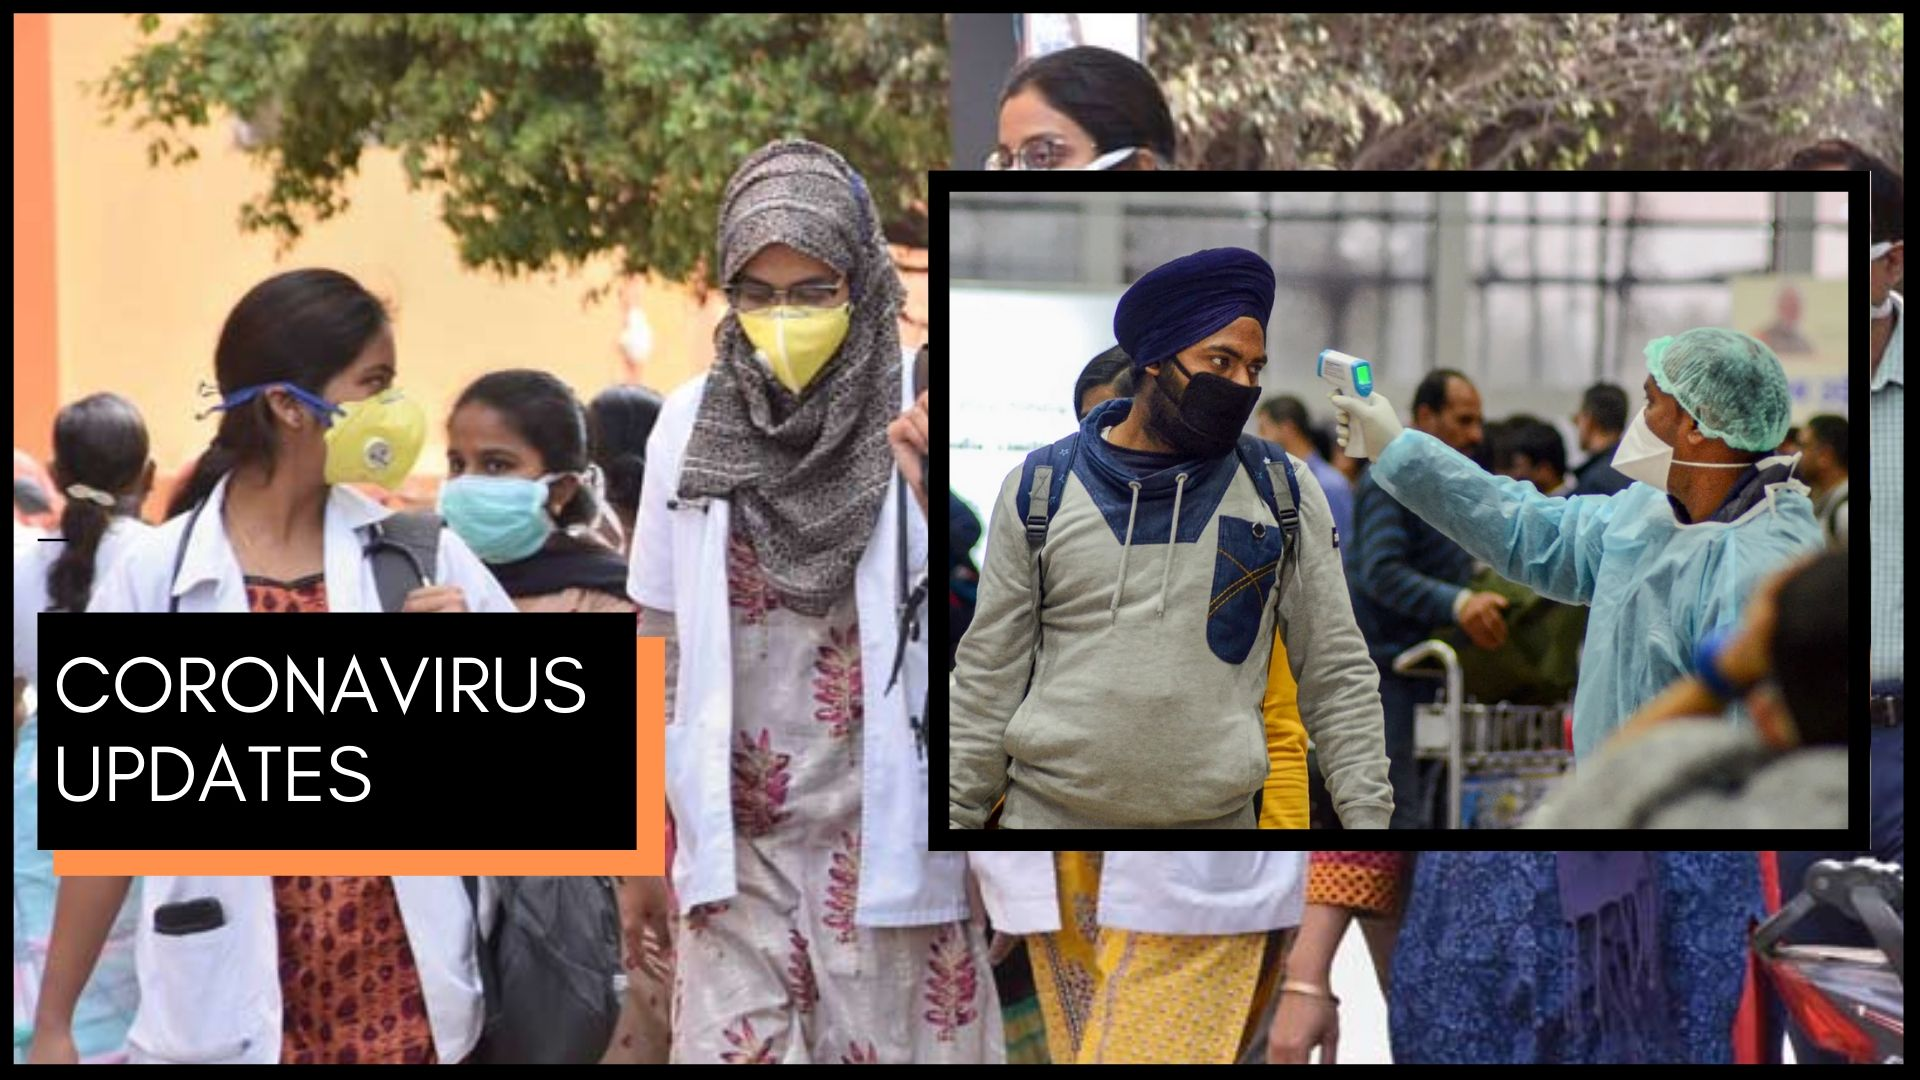 CORONAVIRUS UPDATES: CASES IN INDIA RISE UP TO STAGGERING 62